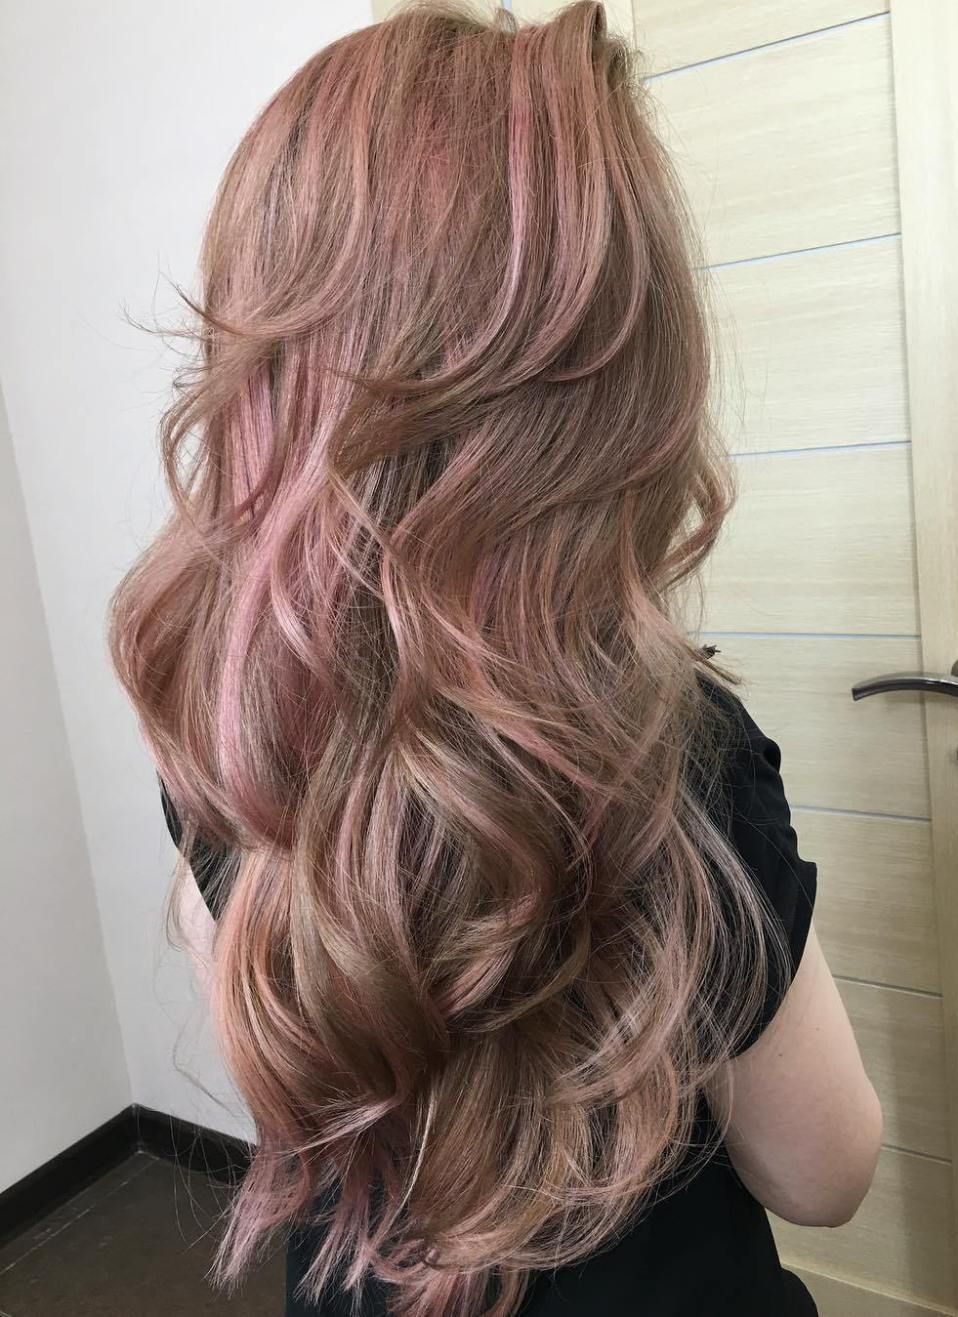 Hairstyles for Long Hair: 80 Tips for Keeping It Long, Healthy, and Beautiful recommend